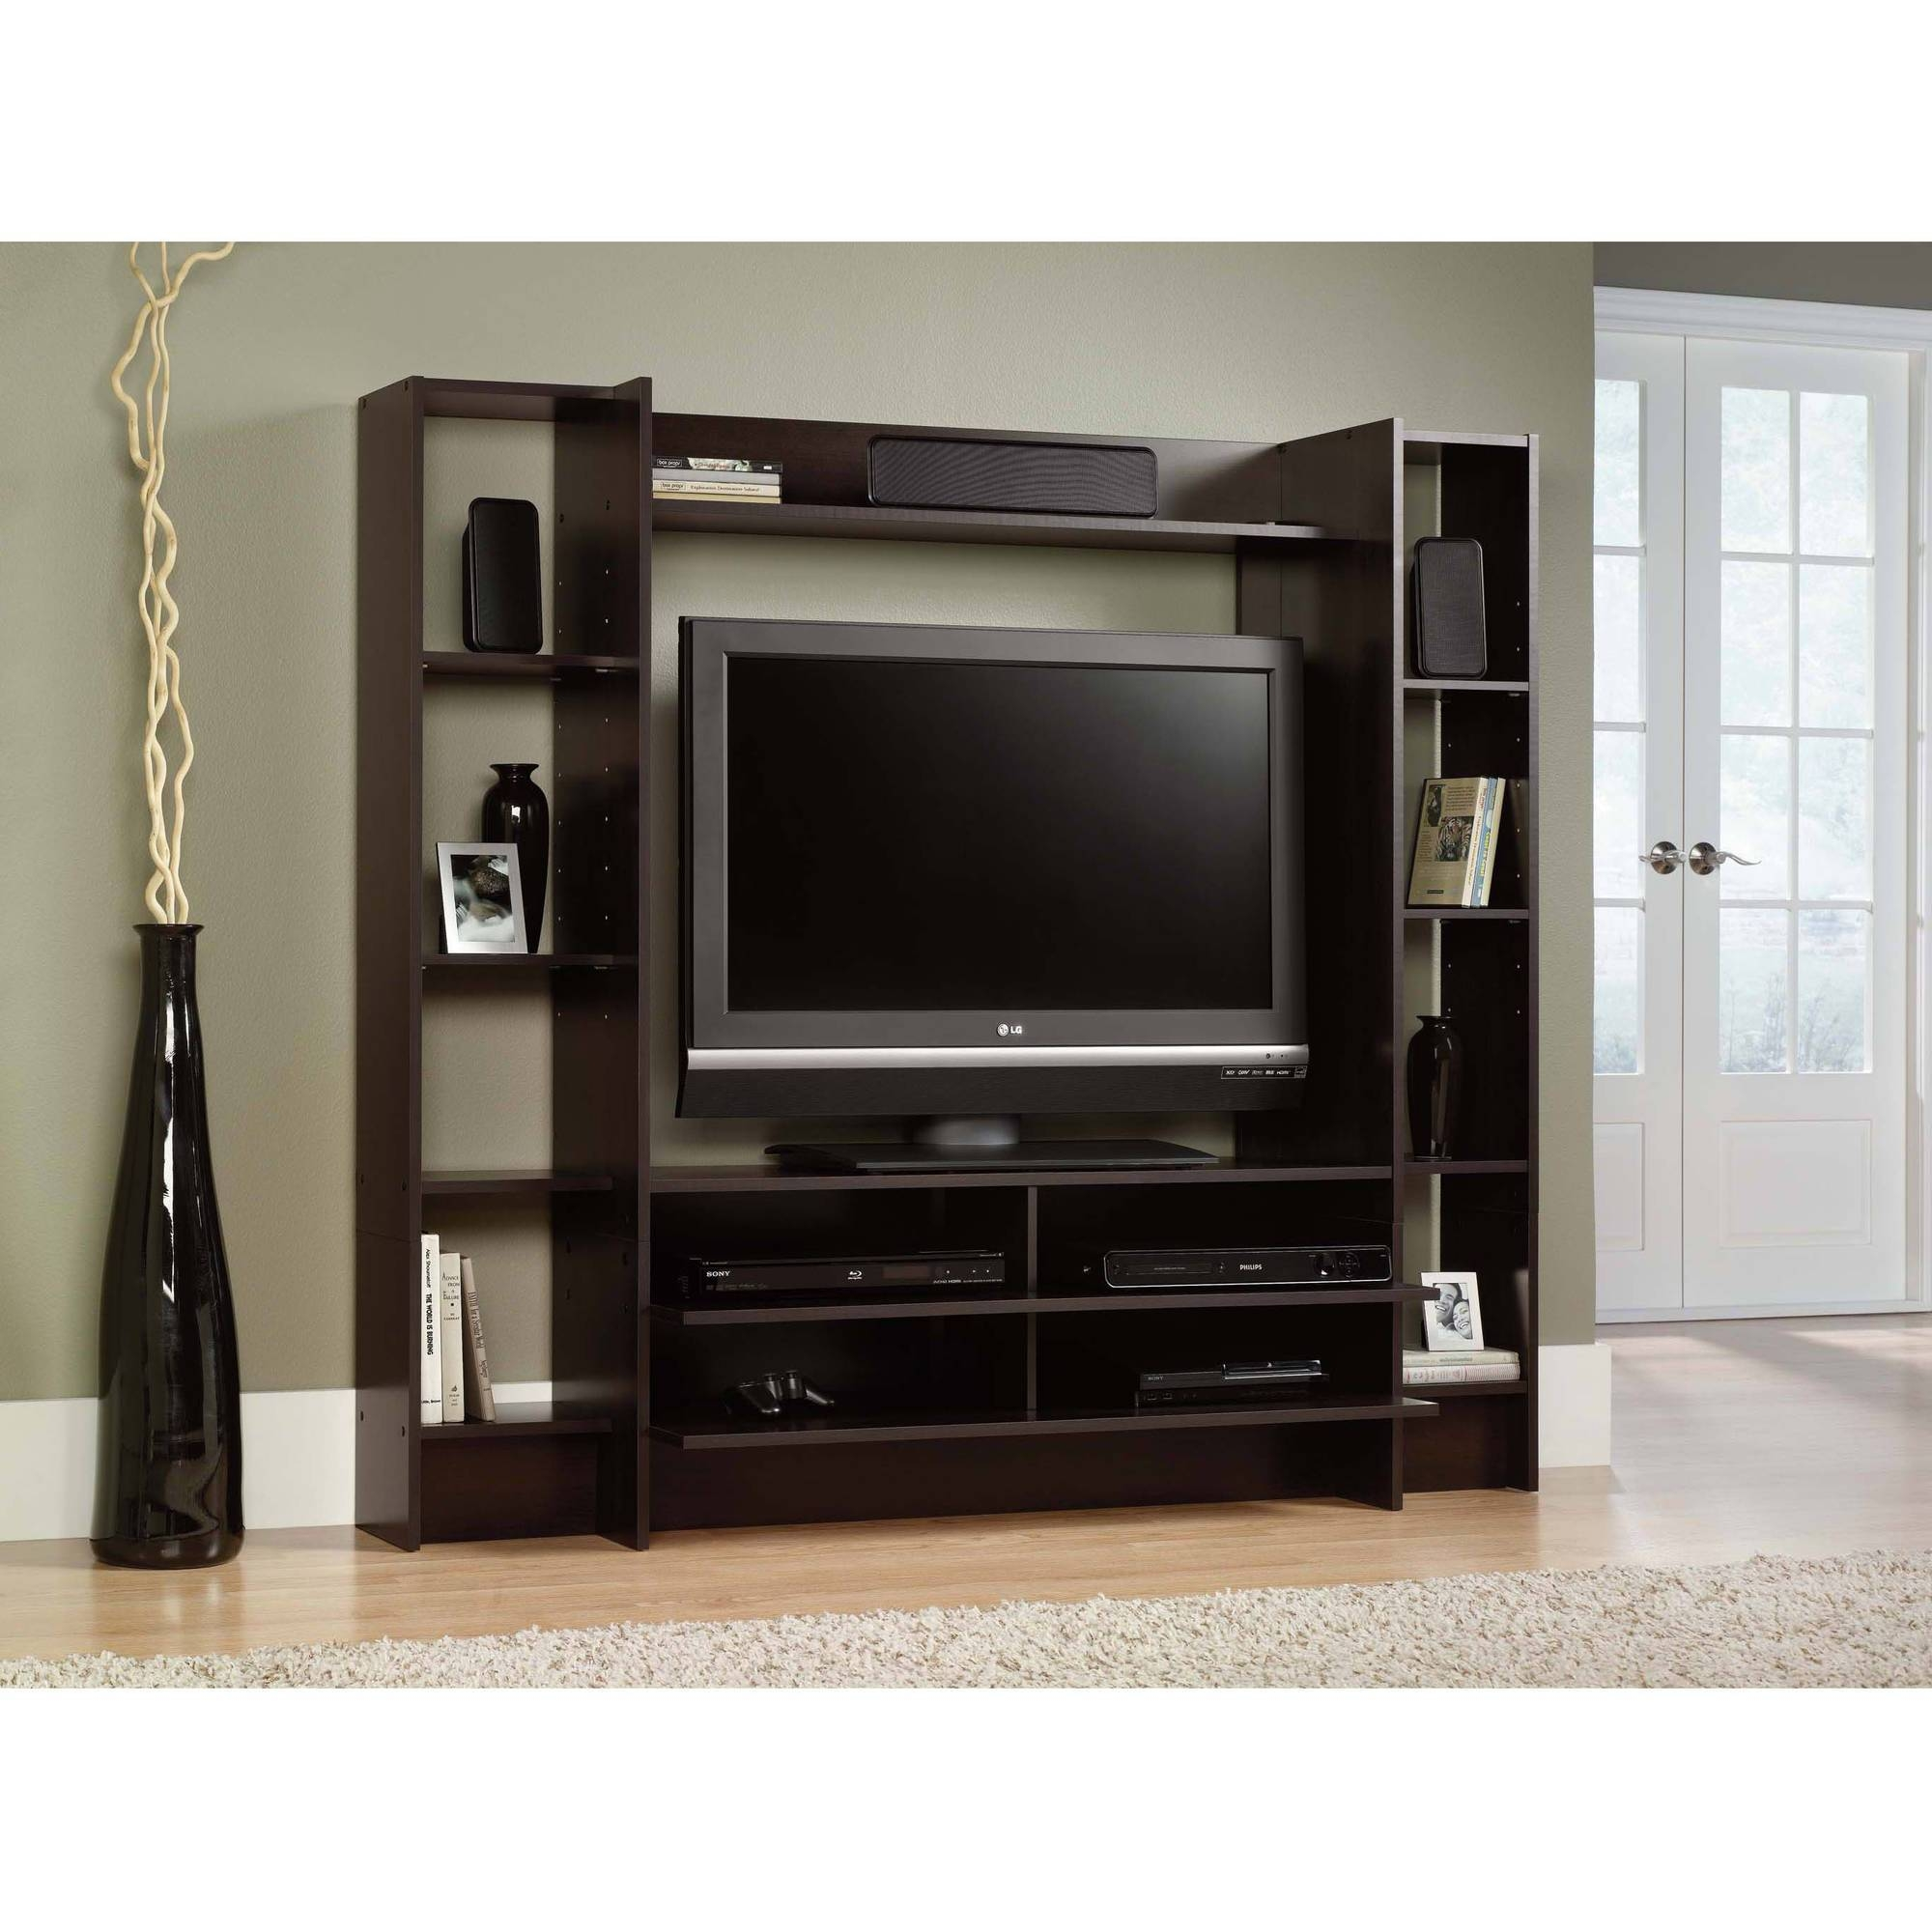 Tv Stands & Entertainment Centers - Walmart intended for Cabinet Tv Stands (Image 12 of 15)